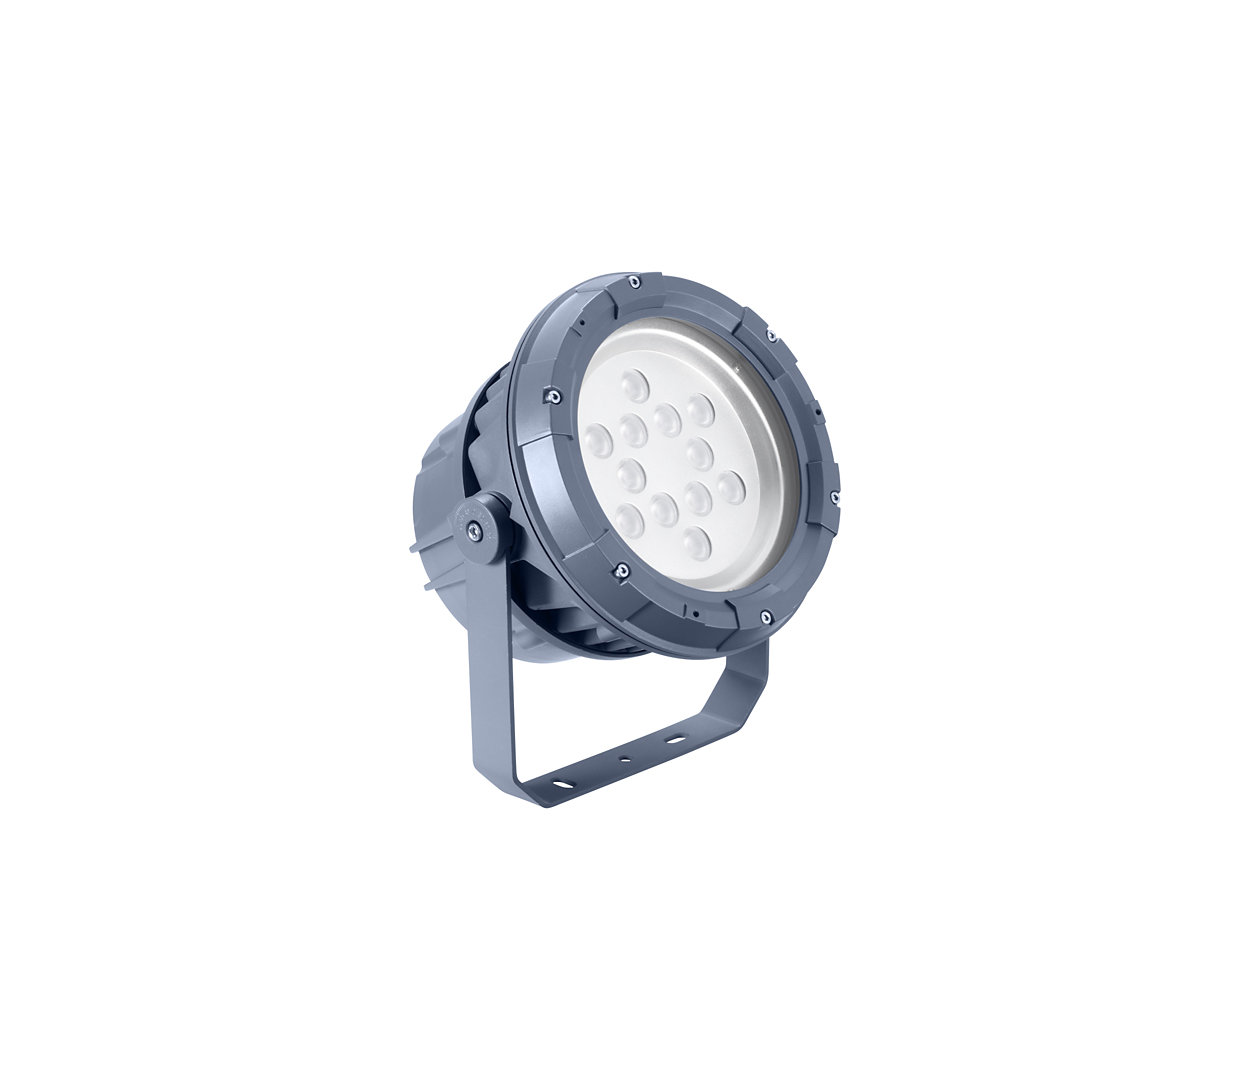 Architectural LED floodlight for fixed or dynamic lighting.